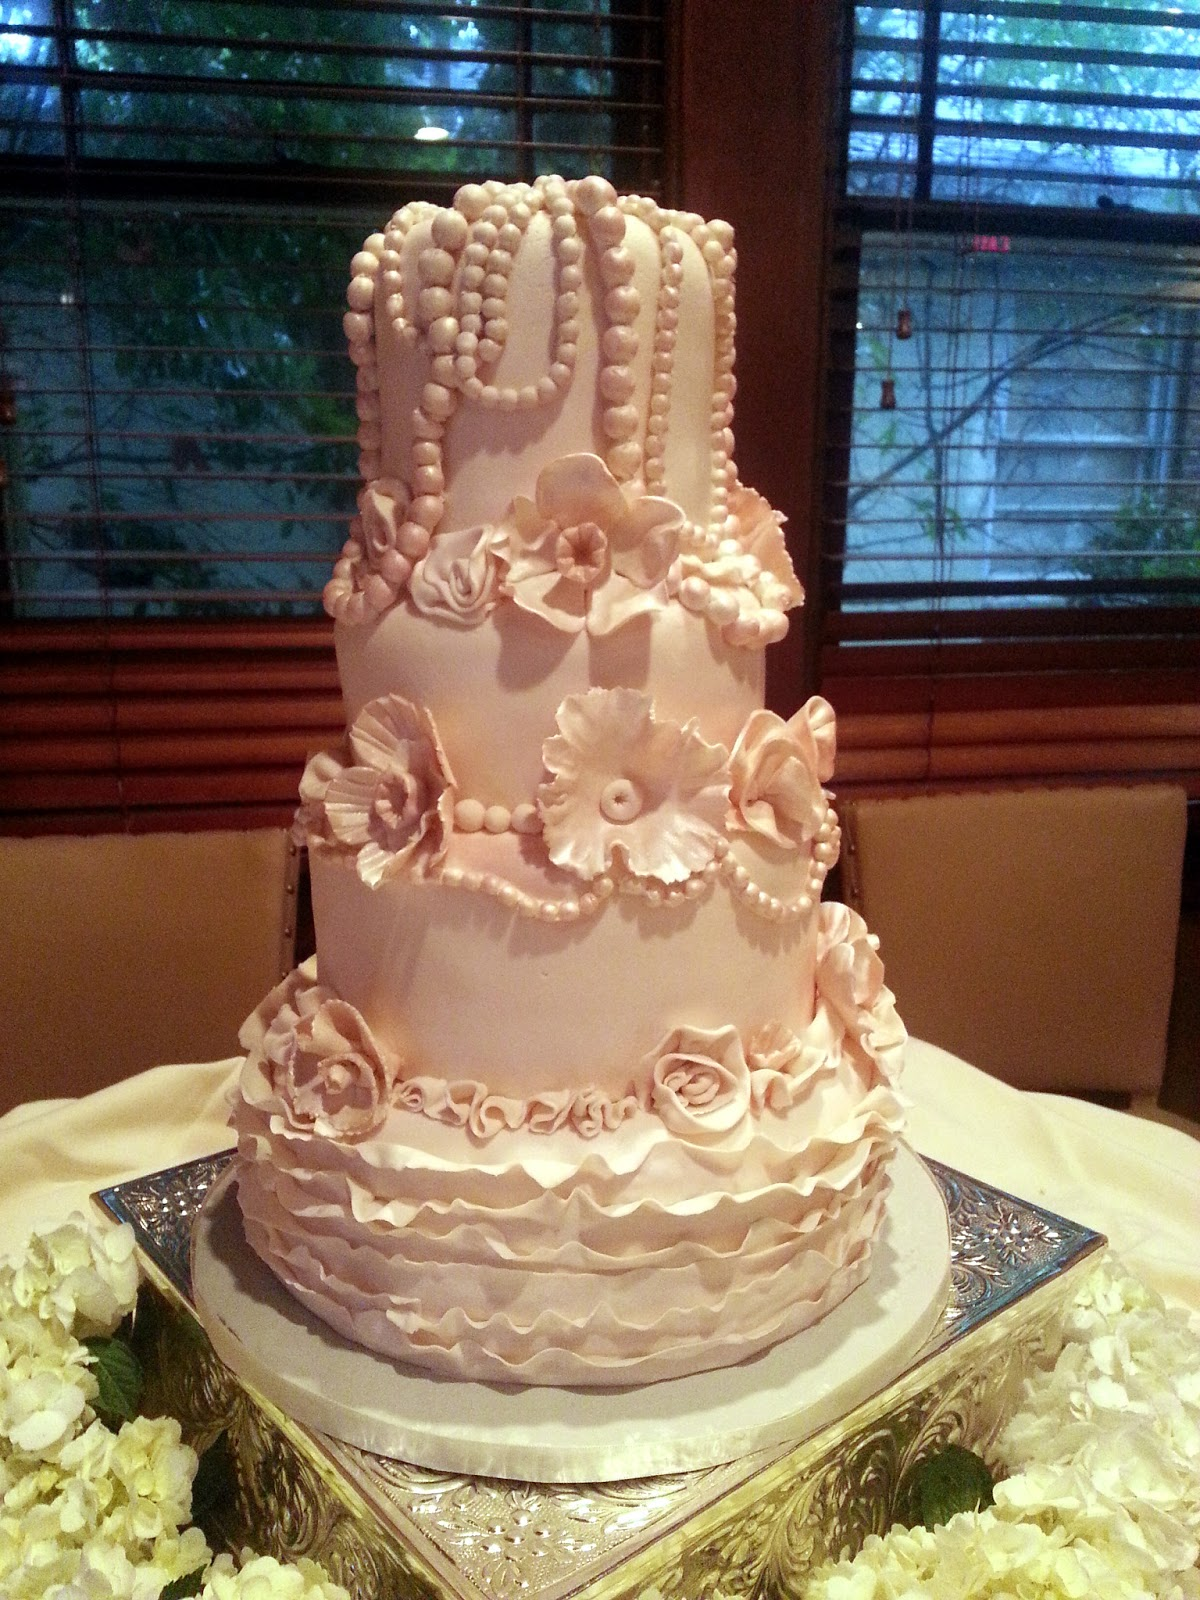 Unfor table Wedding Cakes